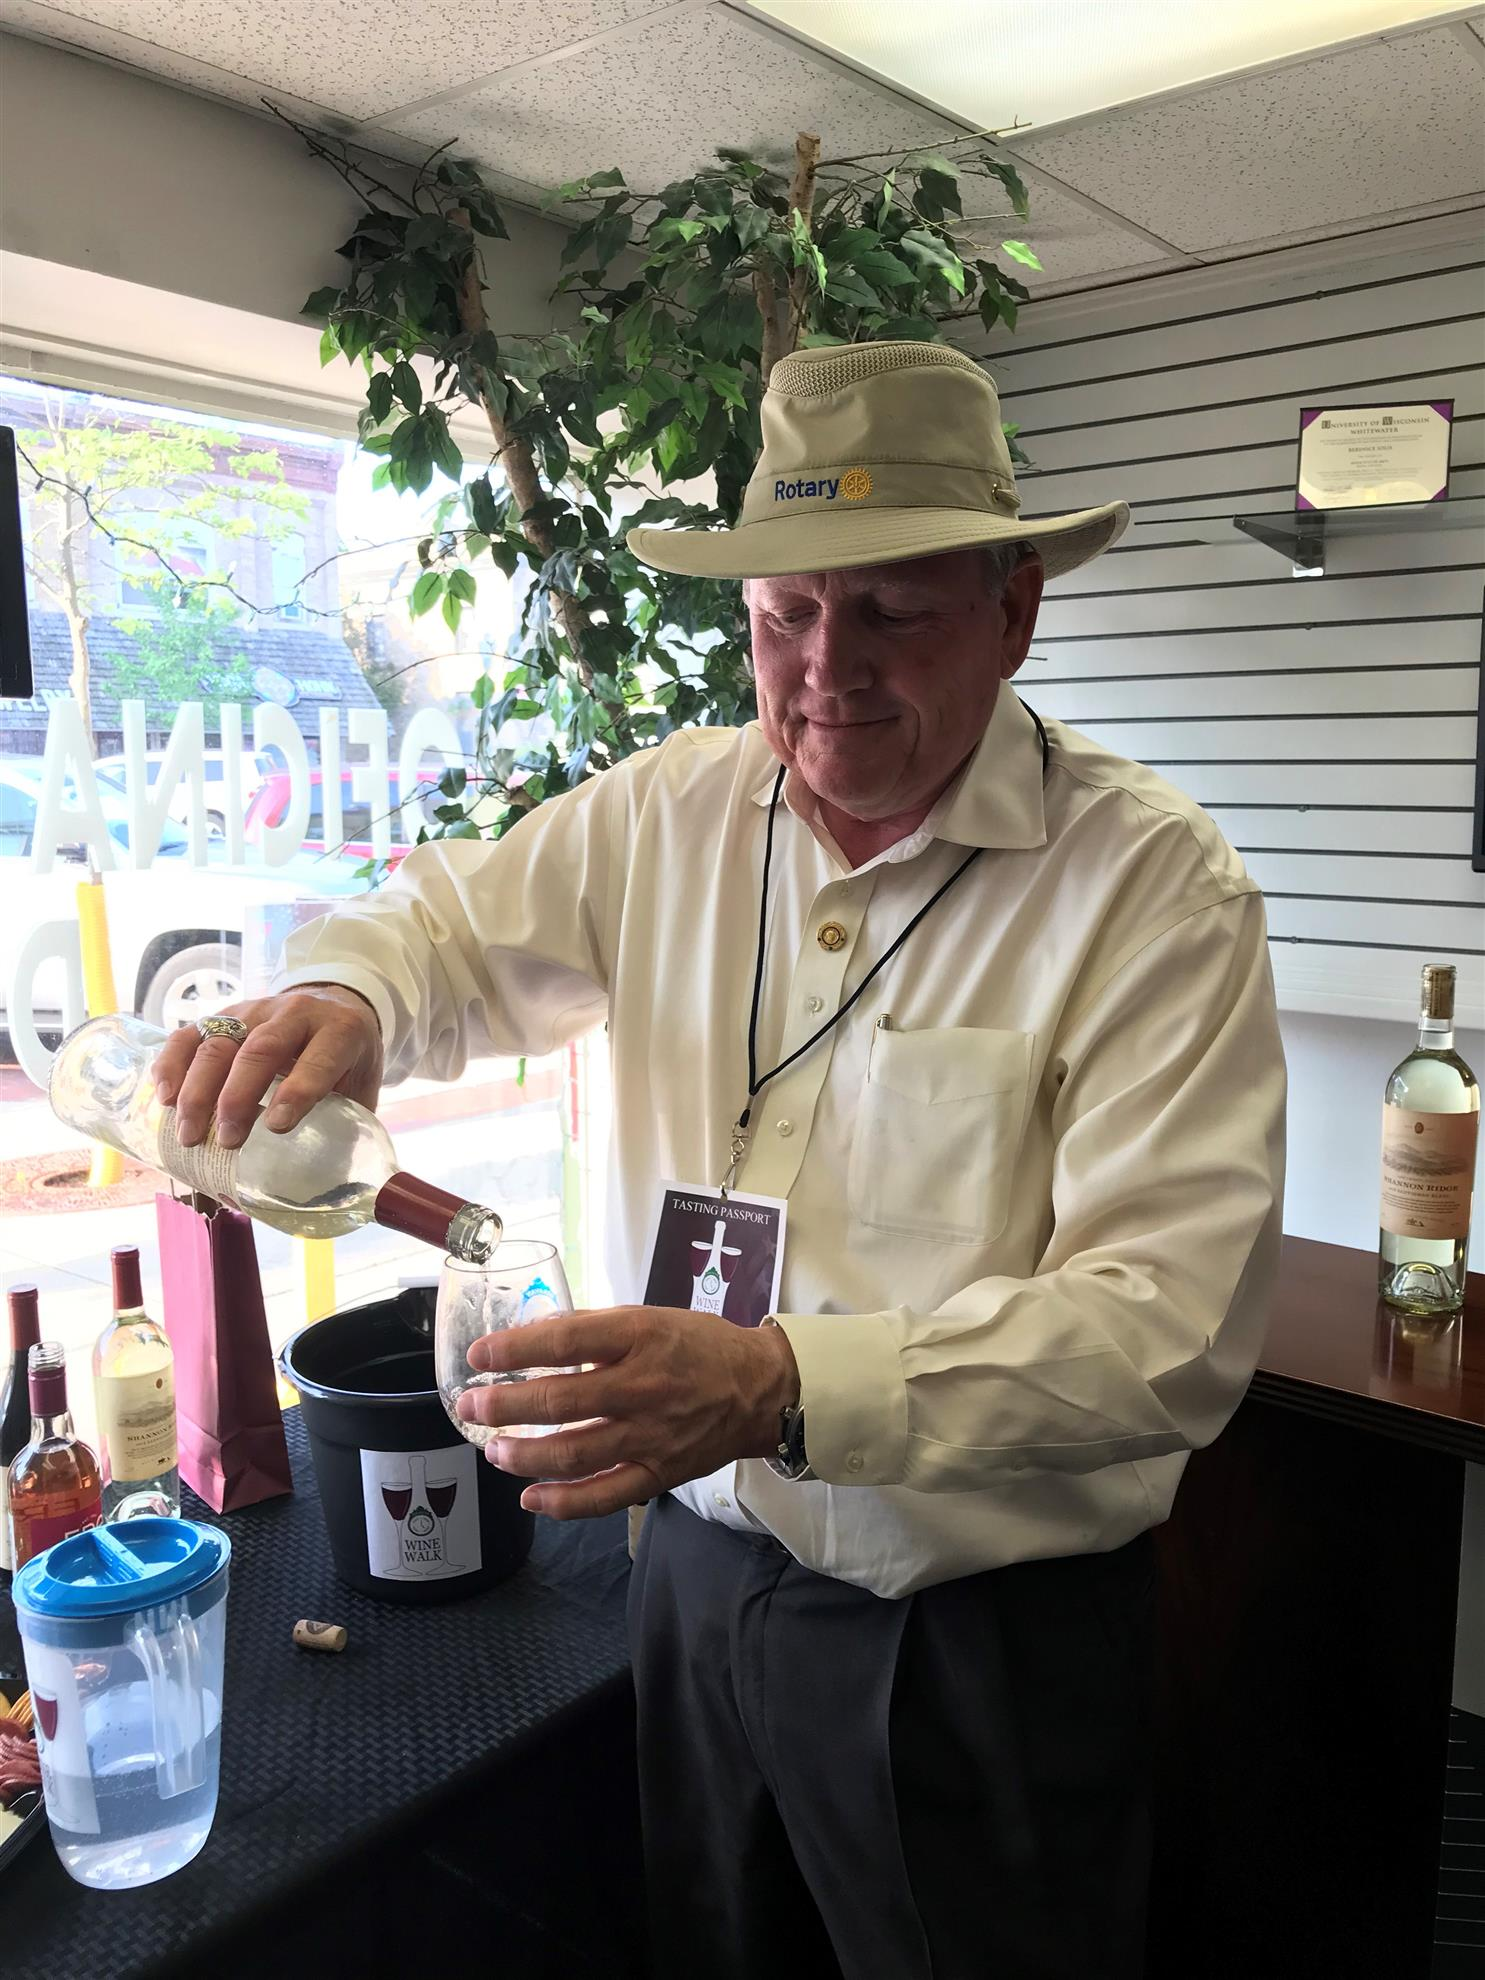 d8737e8f75c770 On May 30th, more than 100 people enjoyed the 2nd wine walk in downtown  Delavan. 17 merchants participated, opening their businesses for wine  tasting and ...